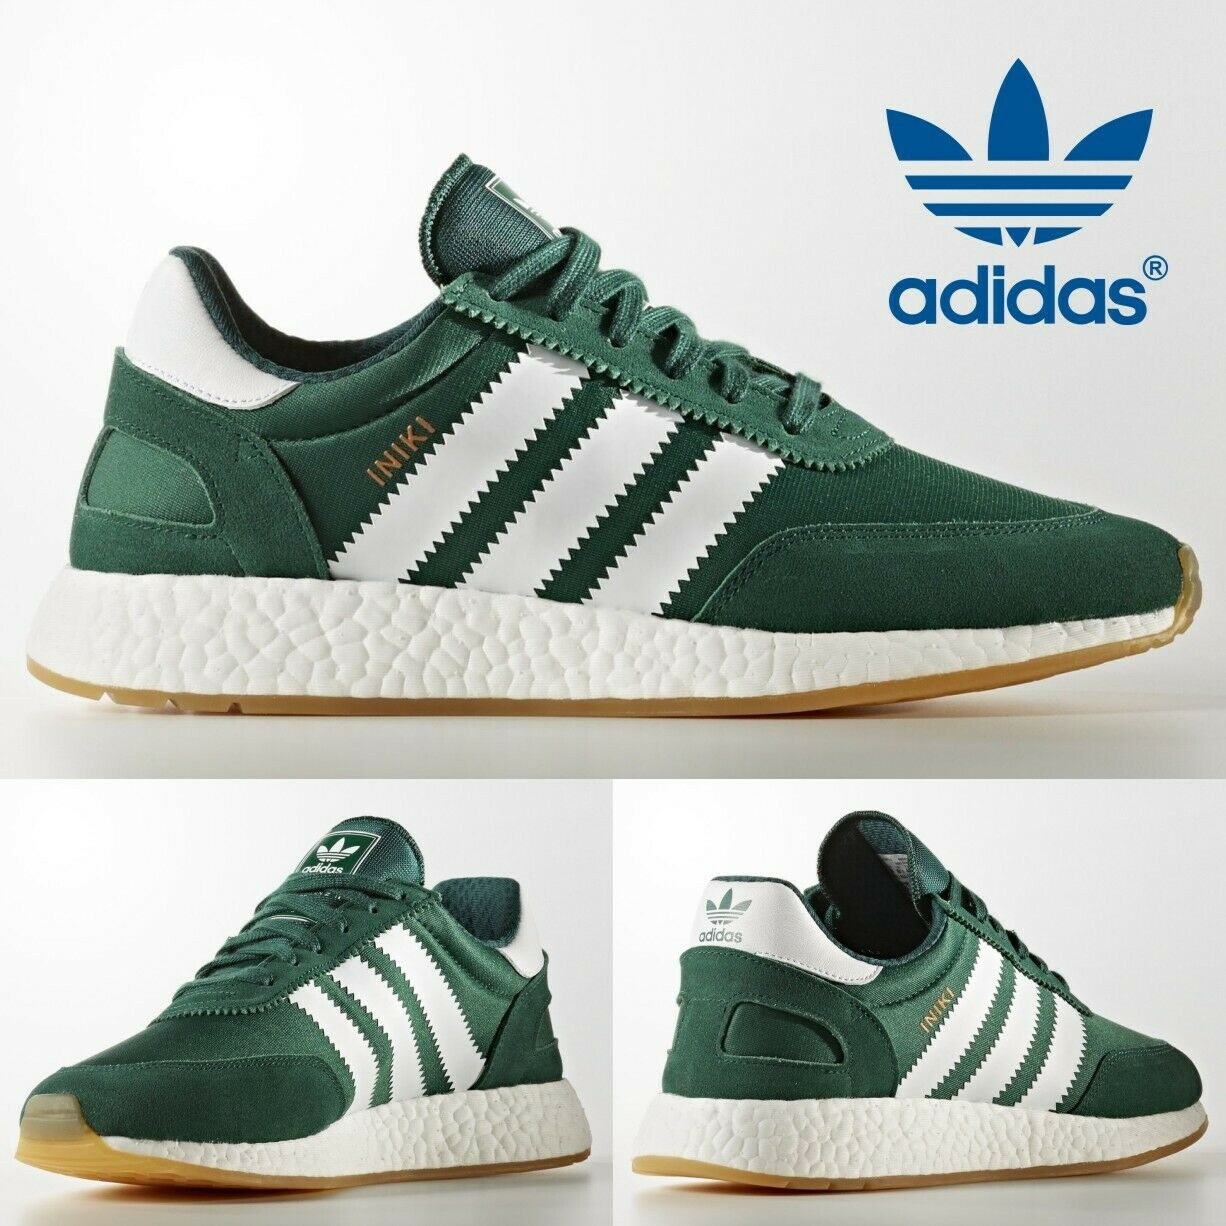 ADIDAS INIKI RUNNER NMD ULTRA BOOST R1 MENS GREEN SHOES HAMBURG GAZELLE BY9726